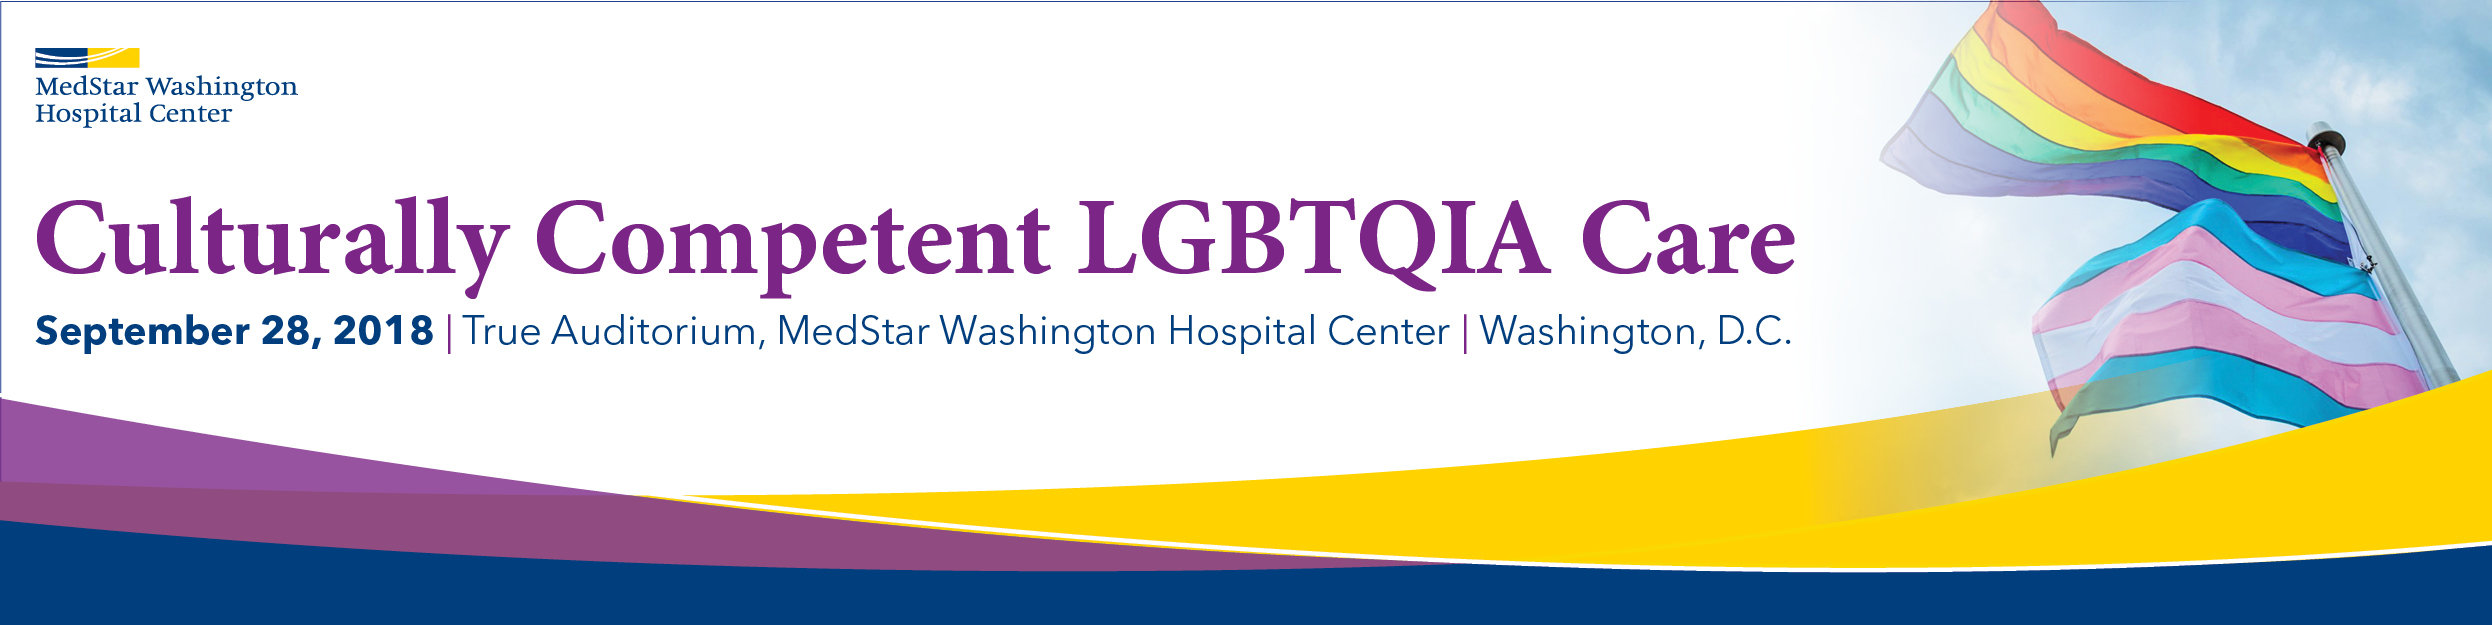 Culturally Competent LGBTQIA Care Banner